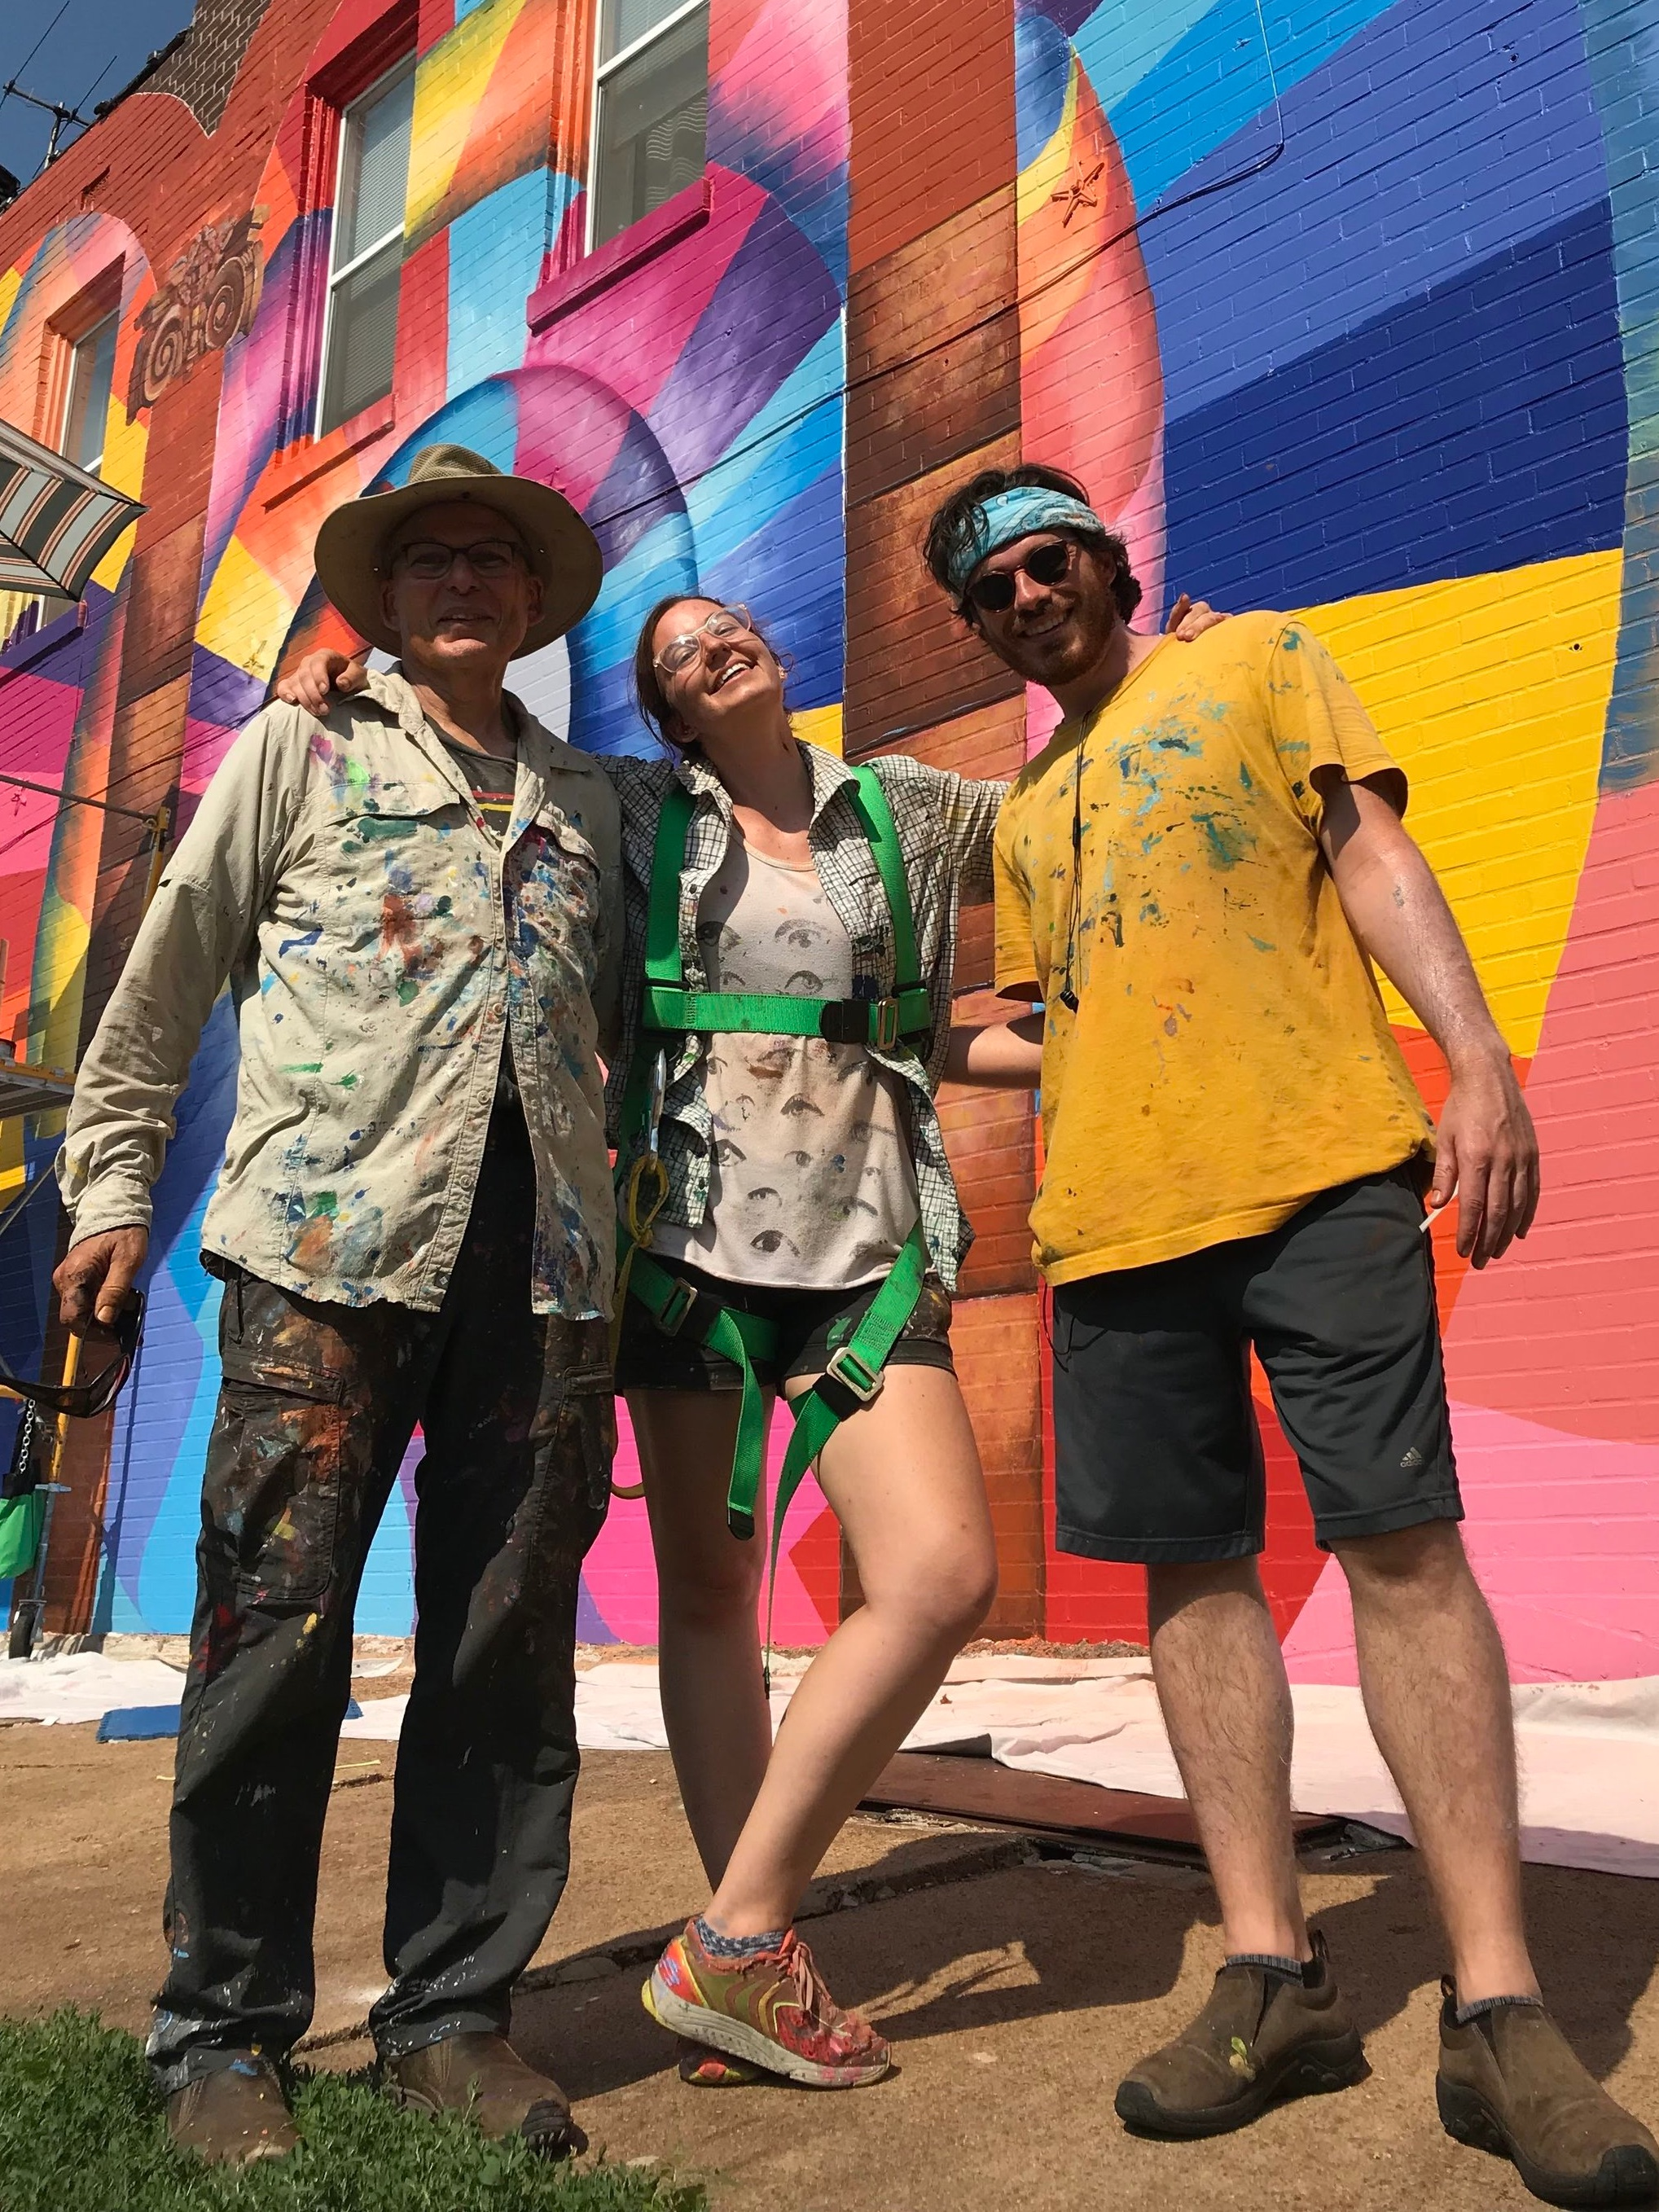 A new era… - In 2015, Fishbone teamed up with his daughter Liza Fishbone (and occasionally her brother, Tyler) to usher in a new chapter of mural making. The amicable friction generated by the difference in their styles unleashed a dynamic from which provoking artworks emerge.